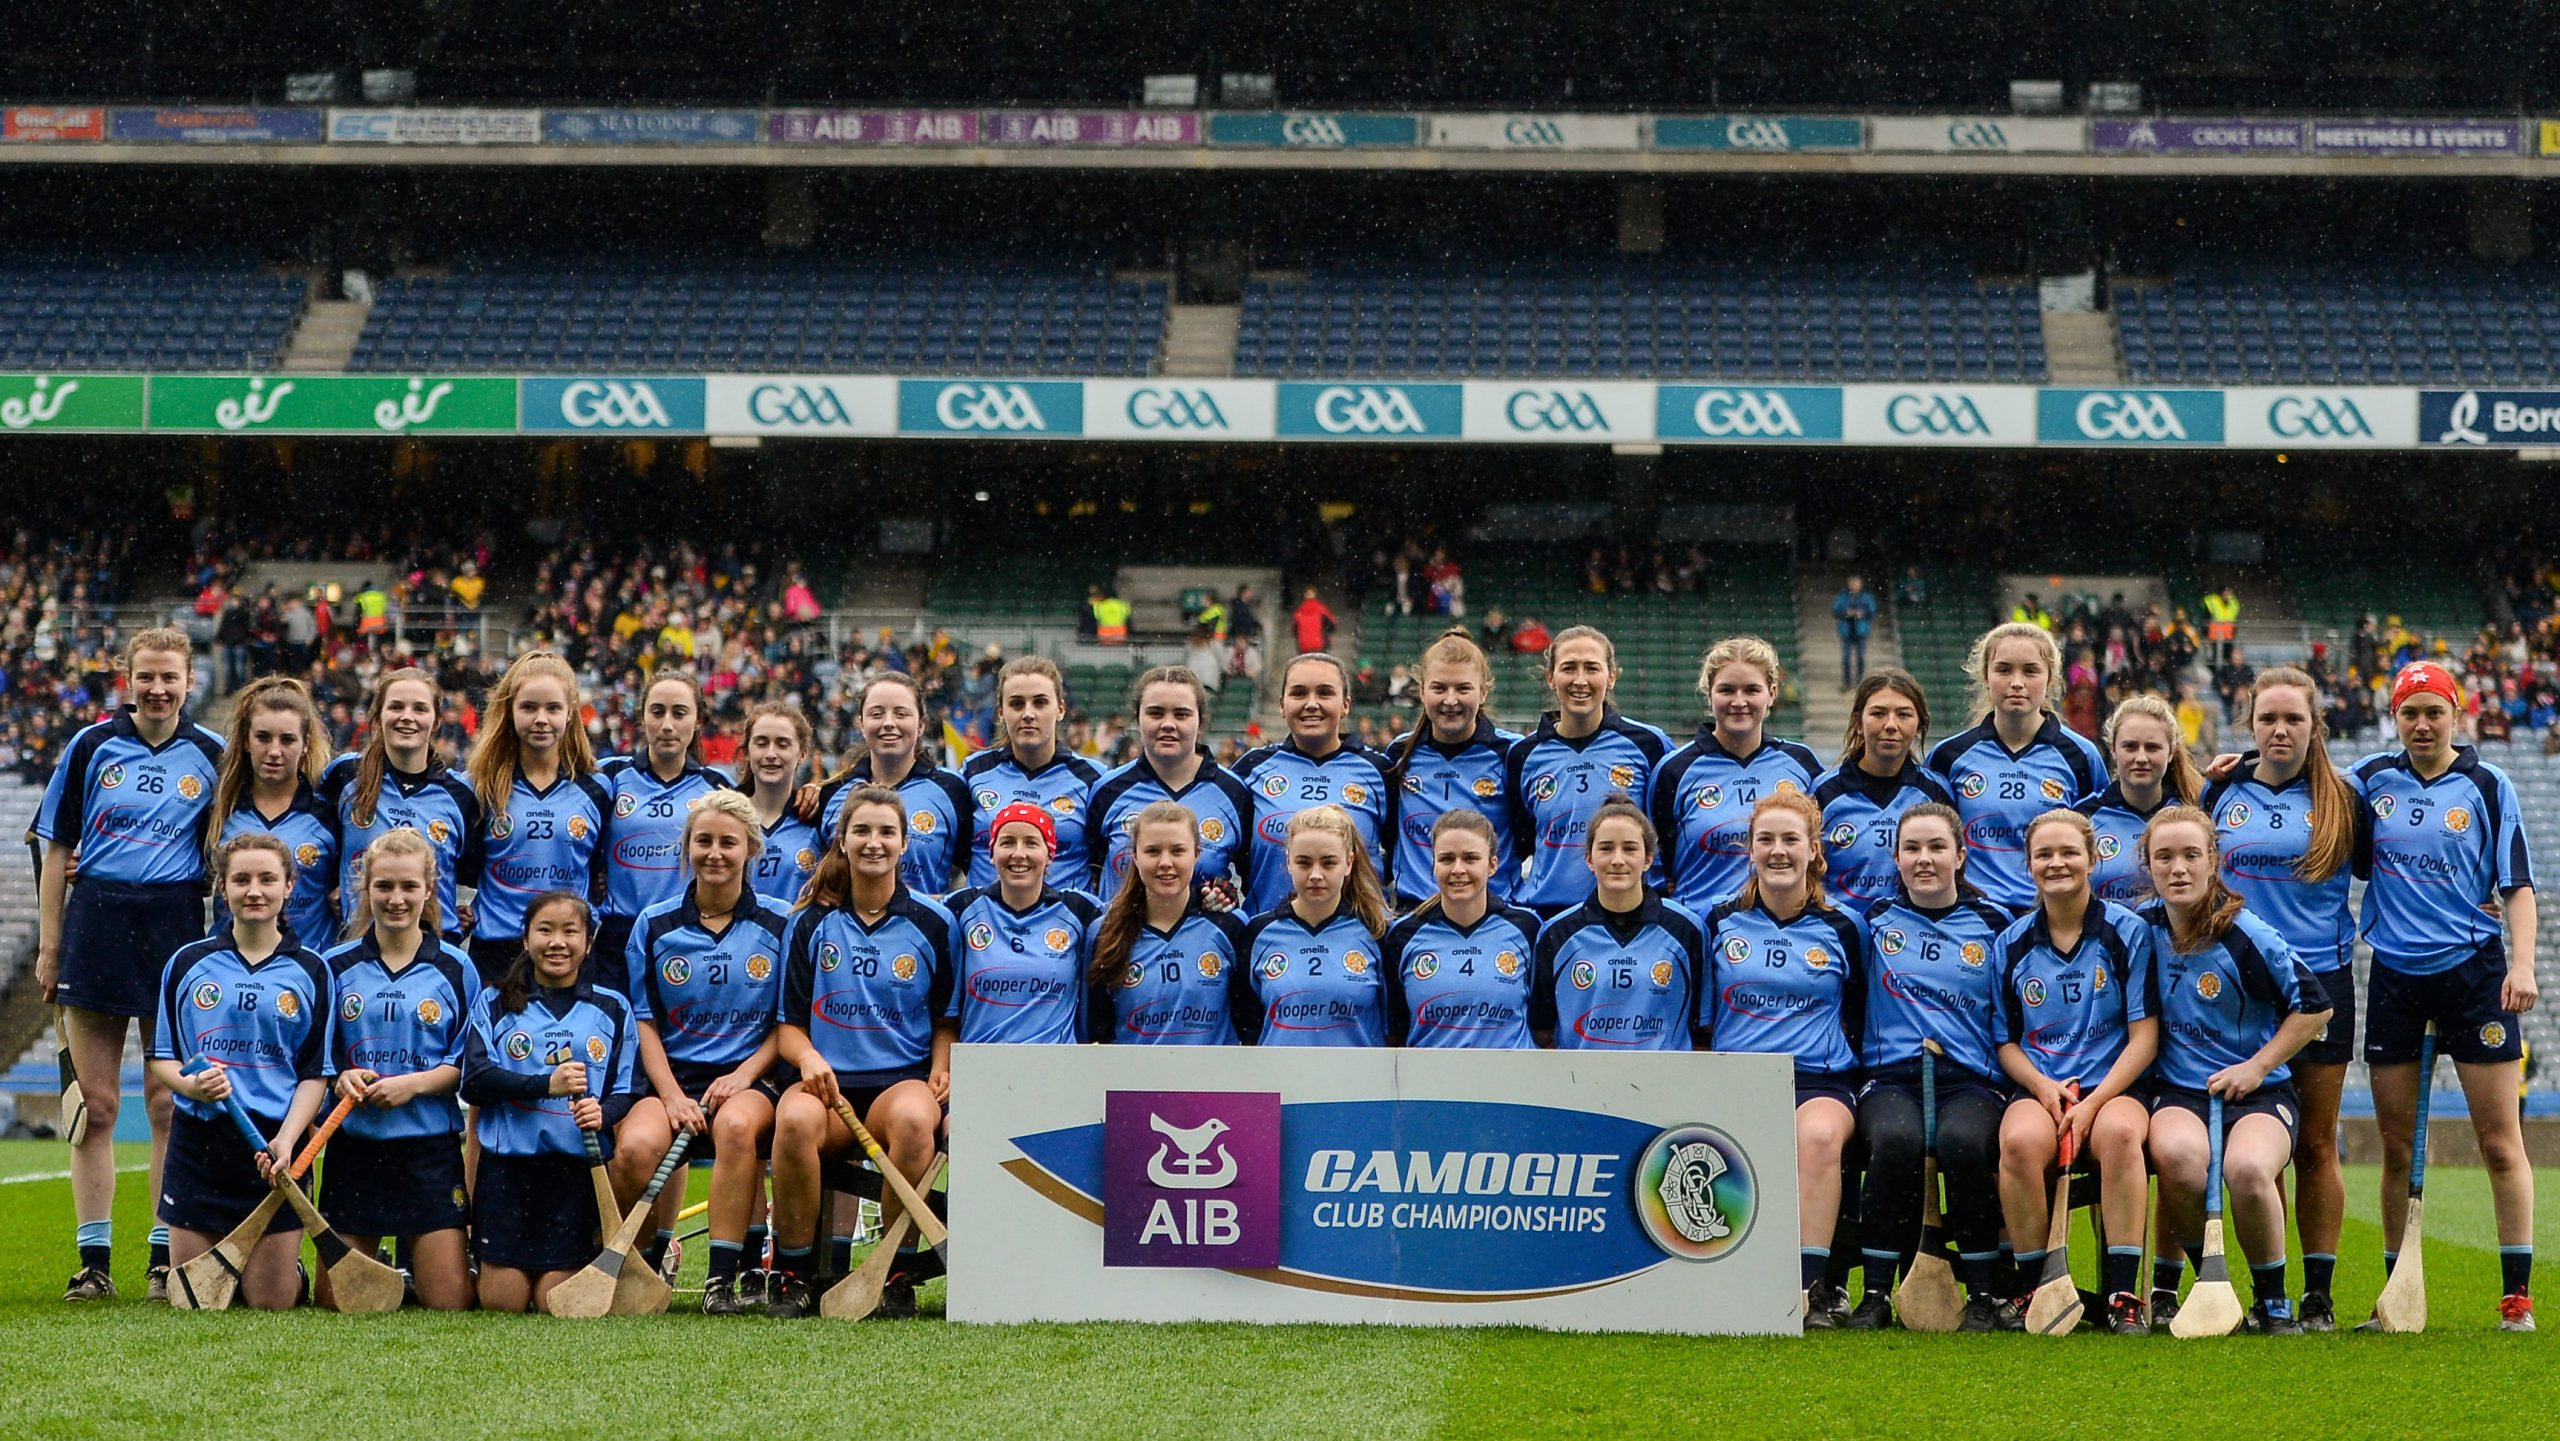 AIB All-Ireland Club Intermediate Camogie Championship Final – Gailltír (Waterford) 1-13 St Rynagh's (Offaly) 0-13